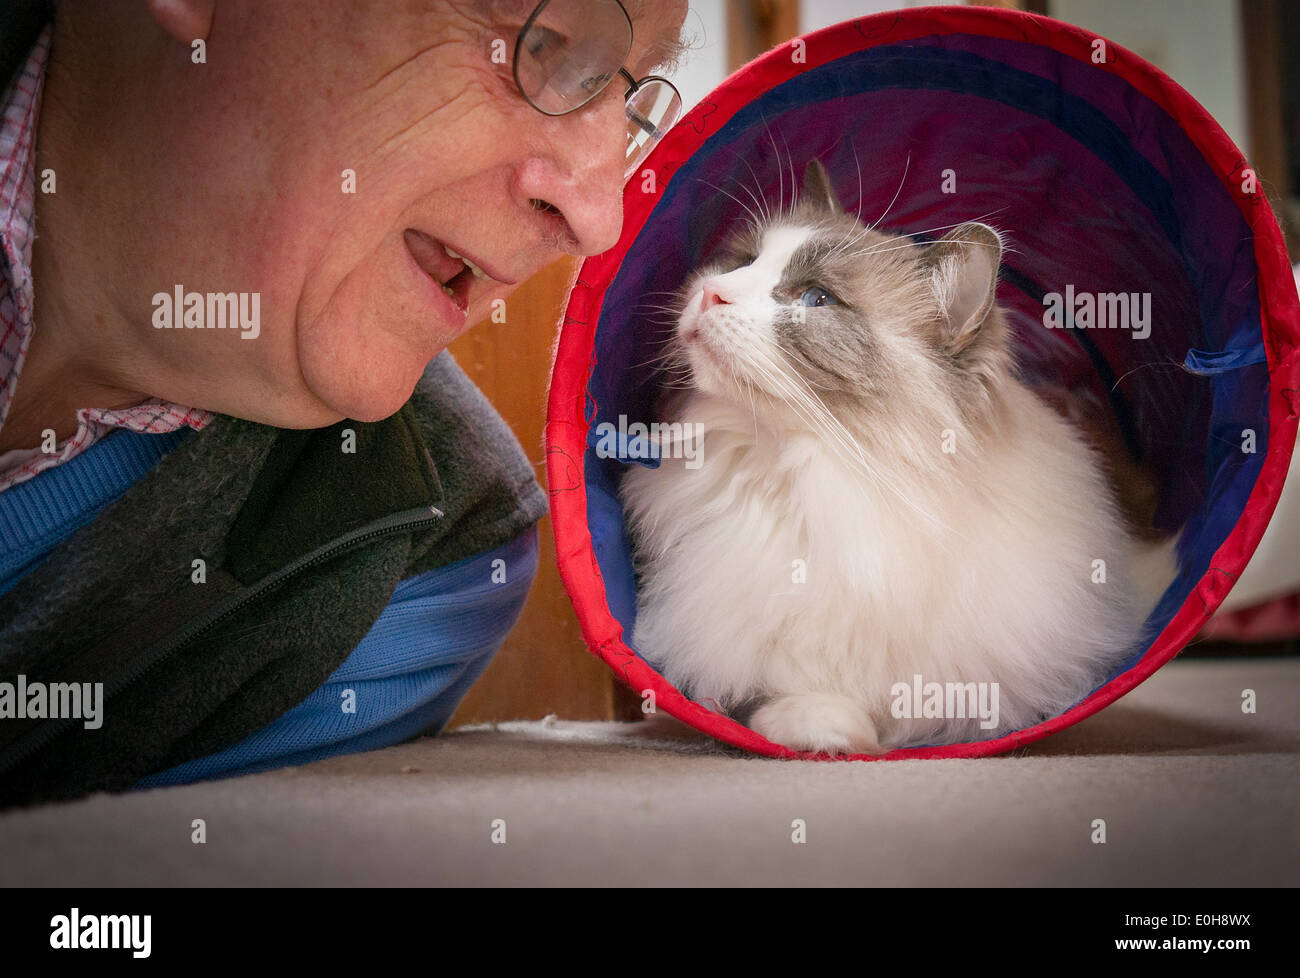 Owner playing with Ragdoll cat emerging from toy tunnel - Stock Image